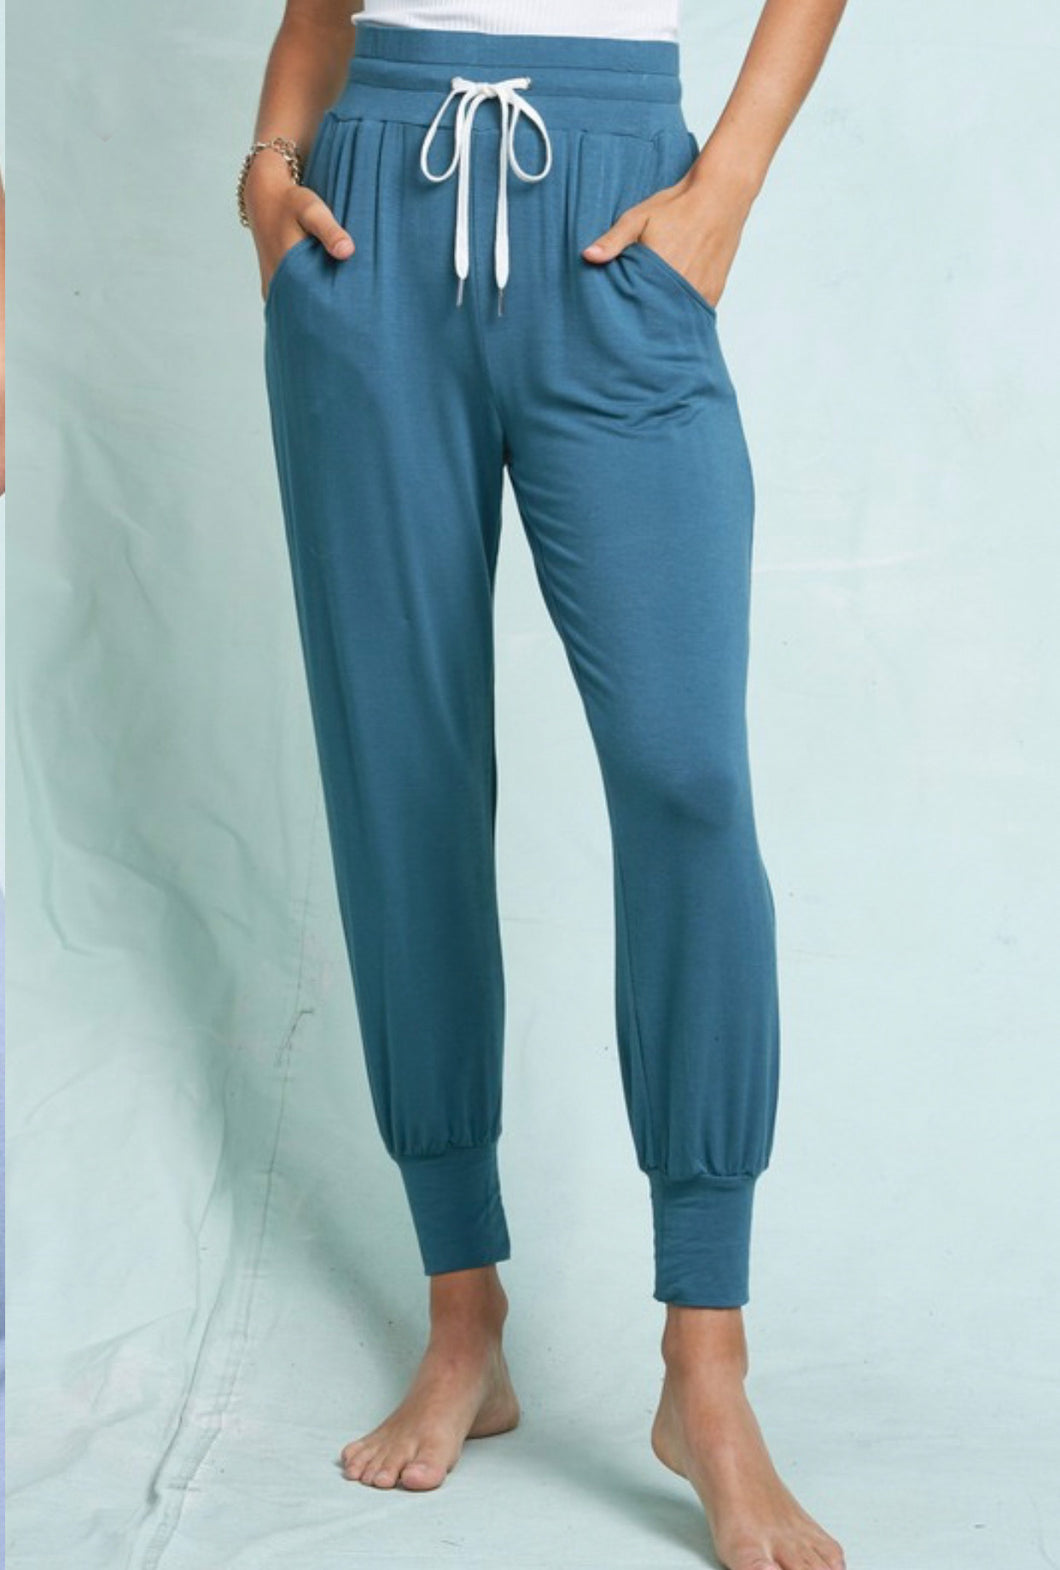 Cozy Casual Joggers in Teal